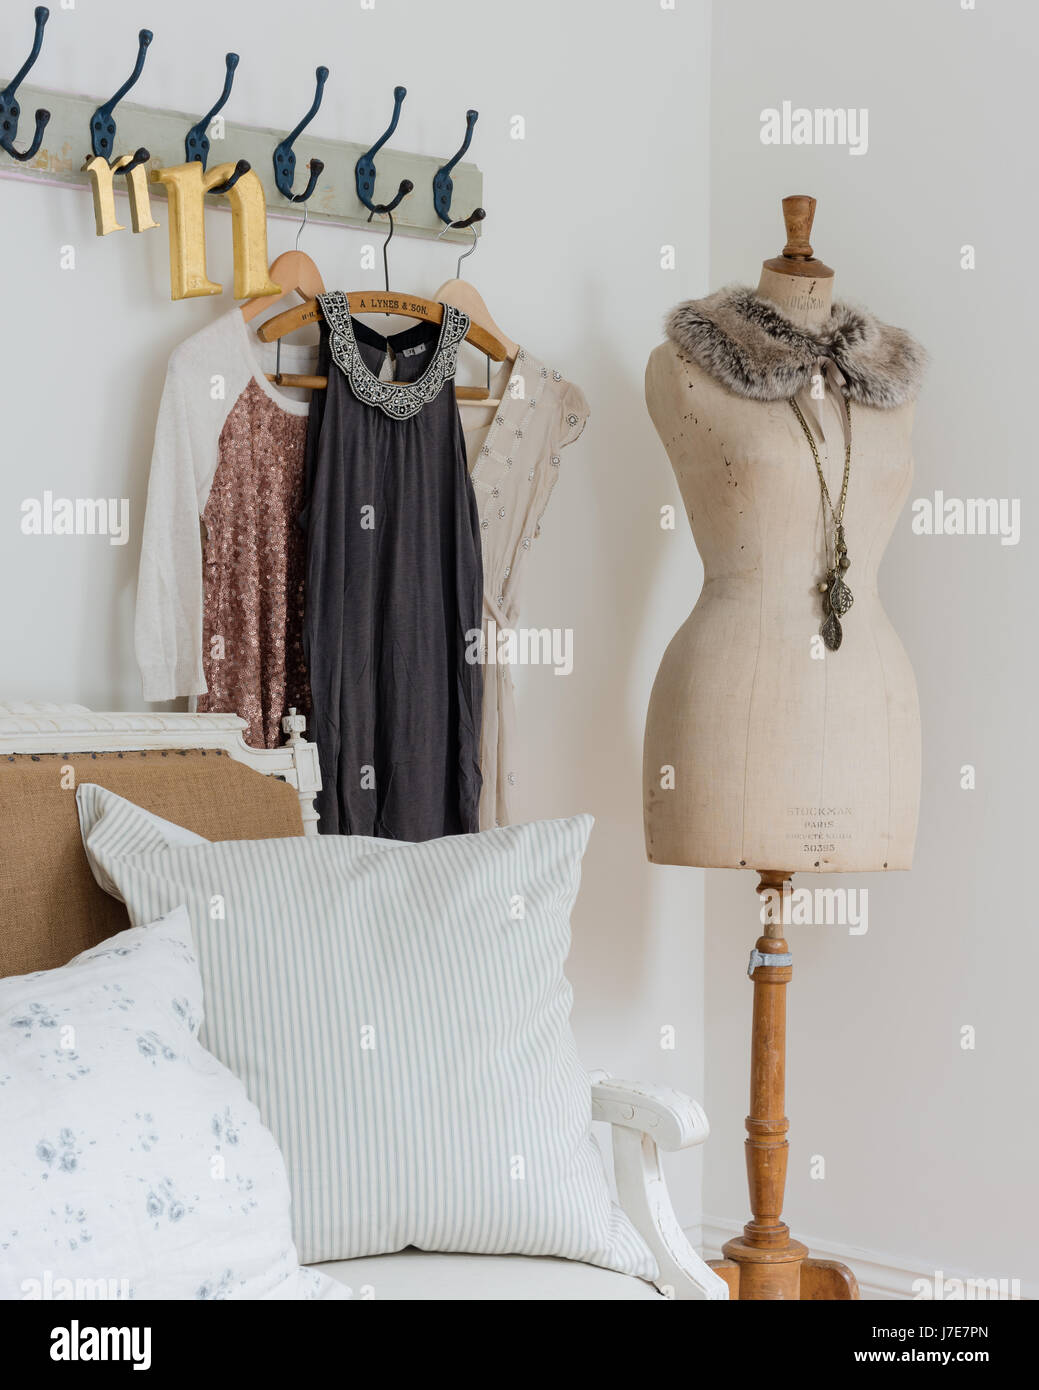 Picture of: Elegant Mannequin In Bedroom With Rustic Coat Hooks And Cushions From Stock Photo Alamy